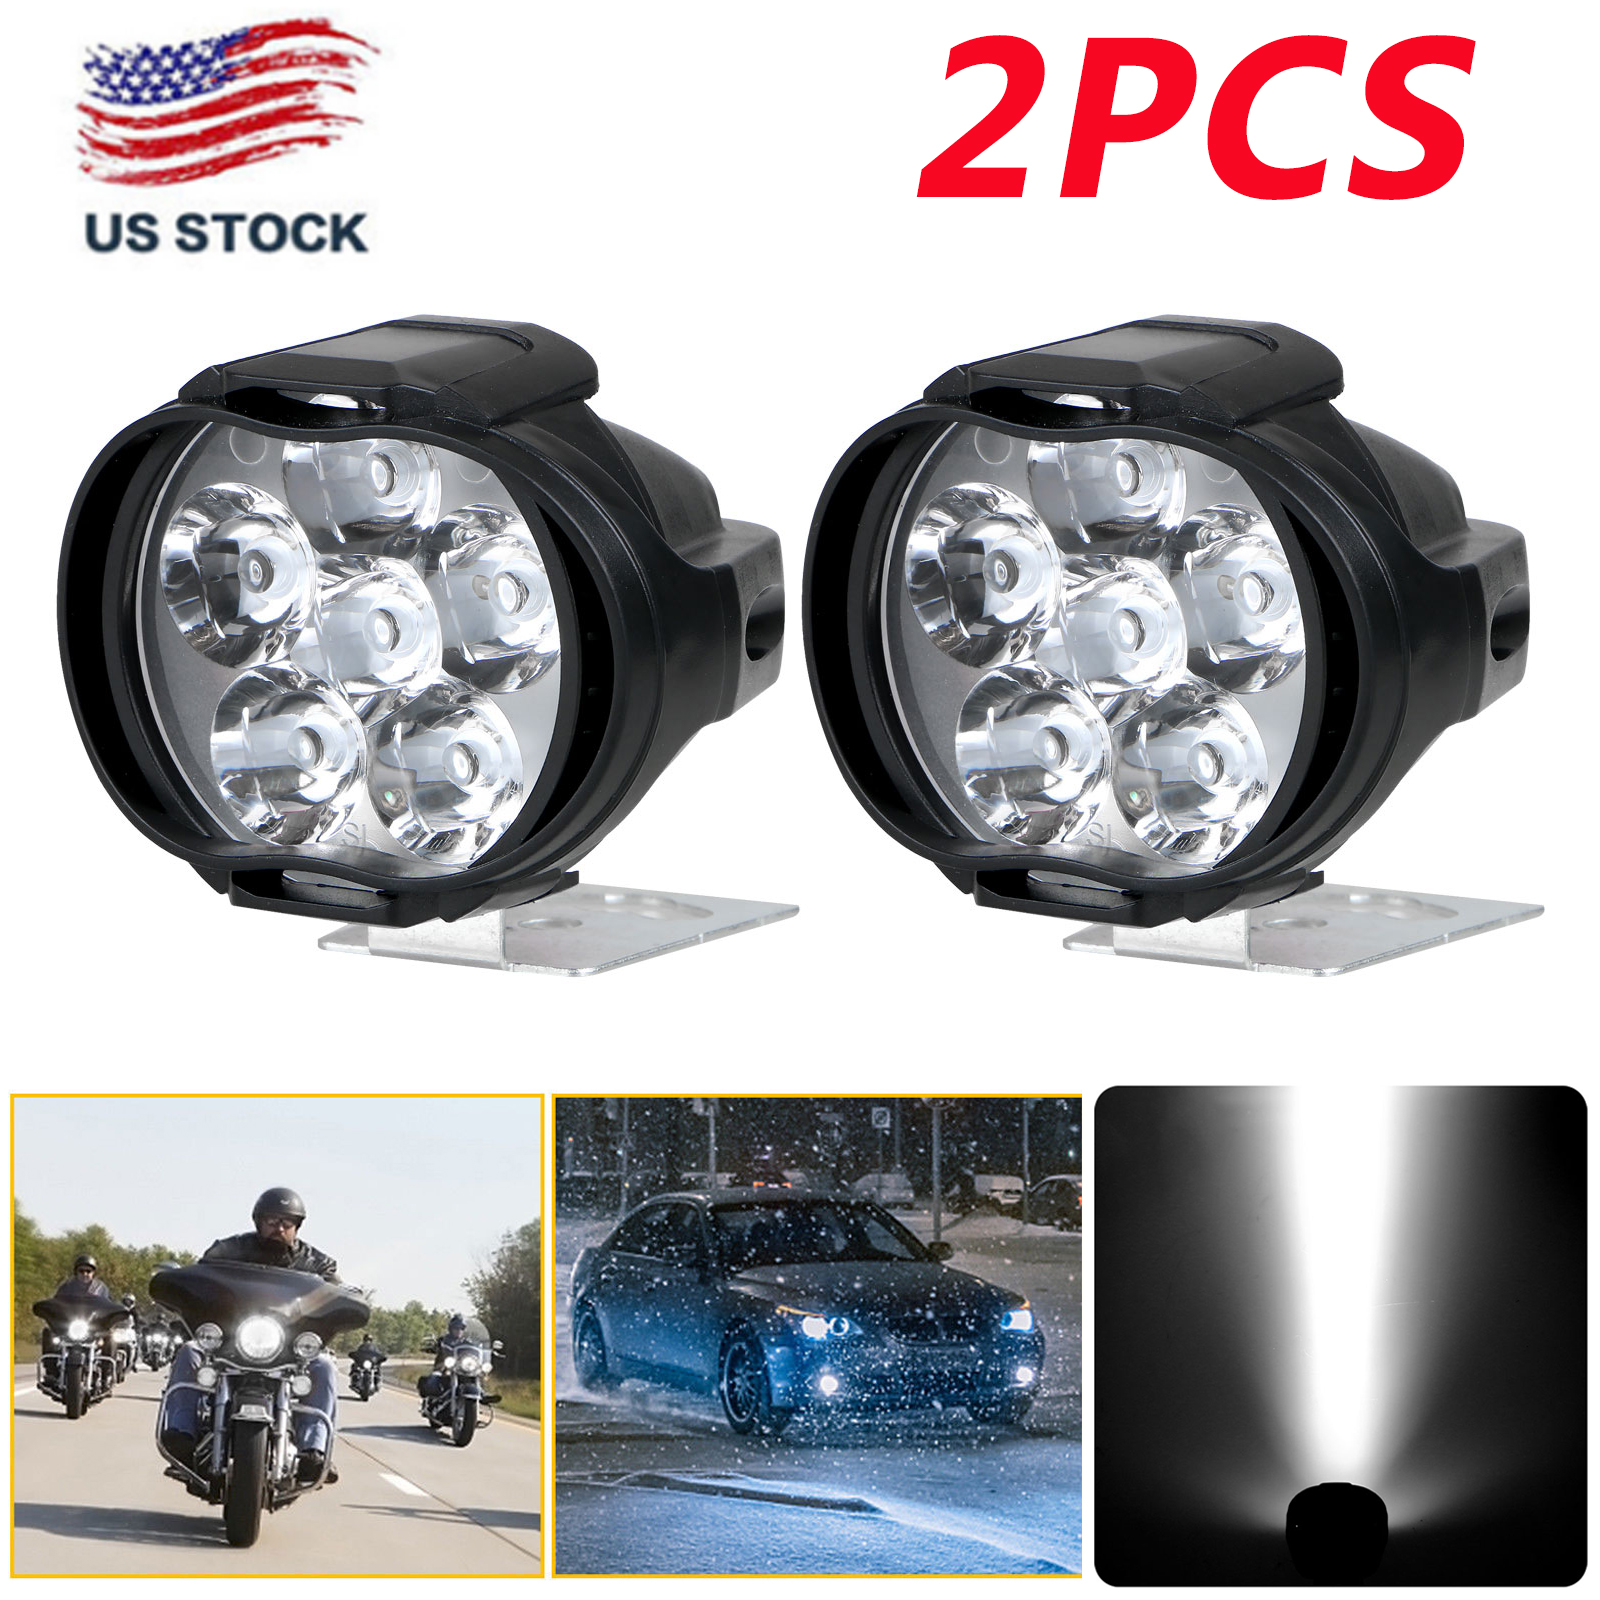 2Pcs-6LED-White-Motorcycle-Headlight-Spot-Light-DRL-Driving-Fog-Lamp-Waterproof thumbnail 10